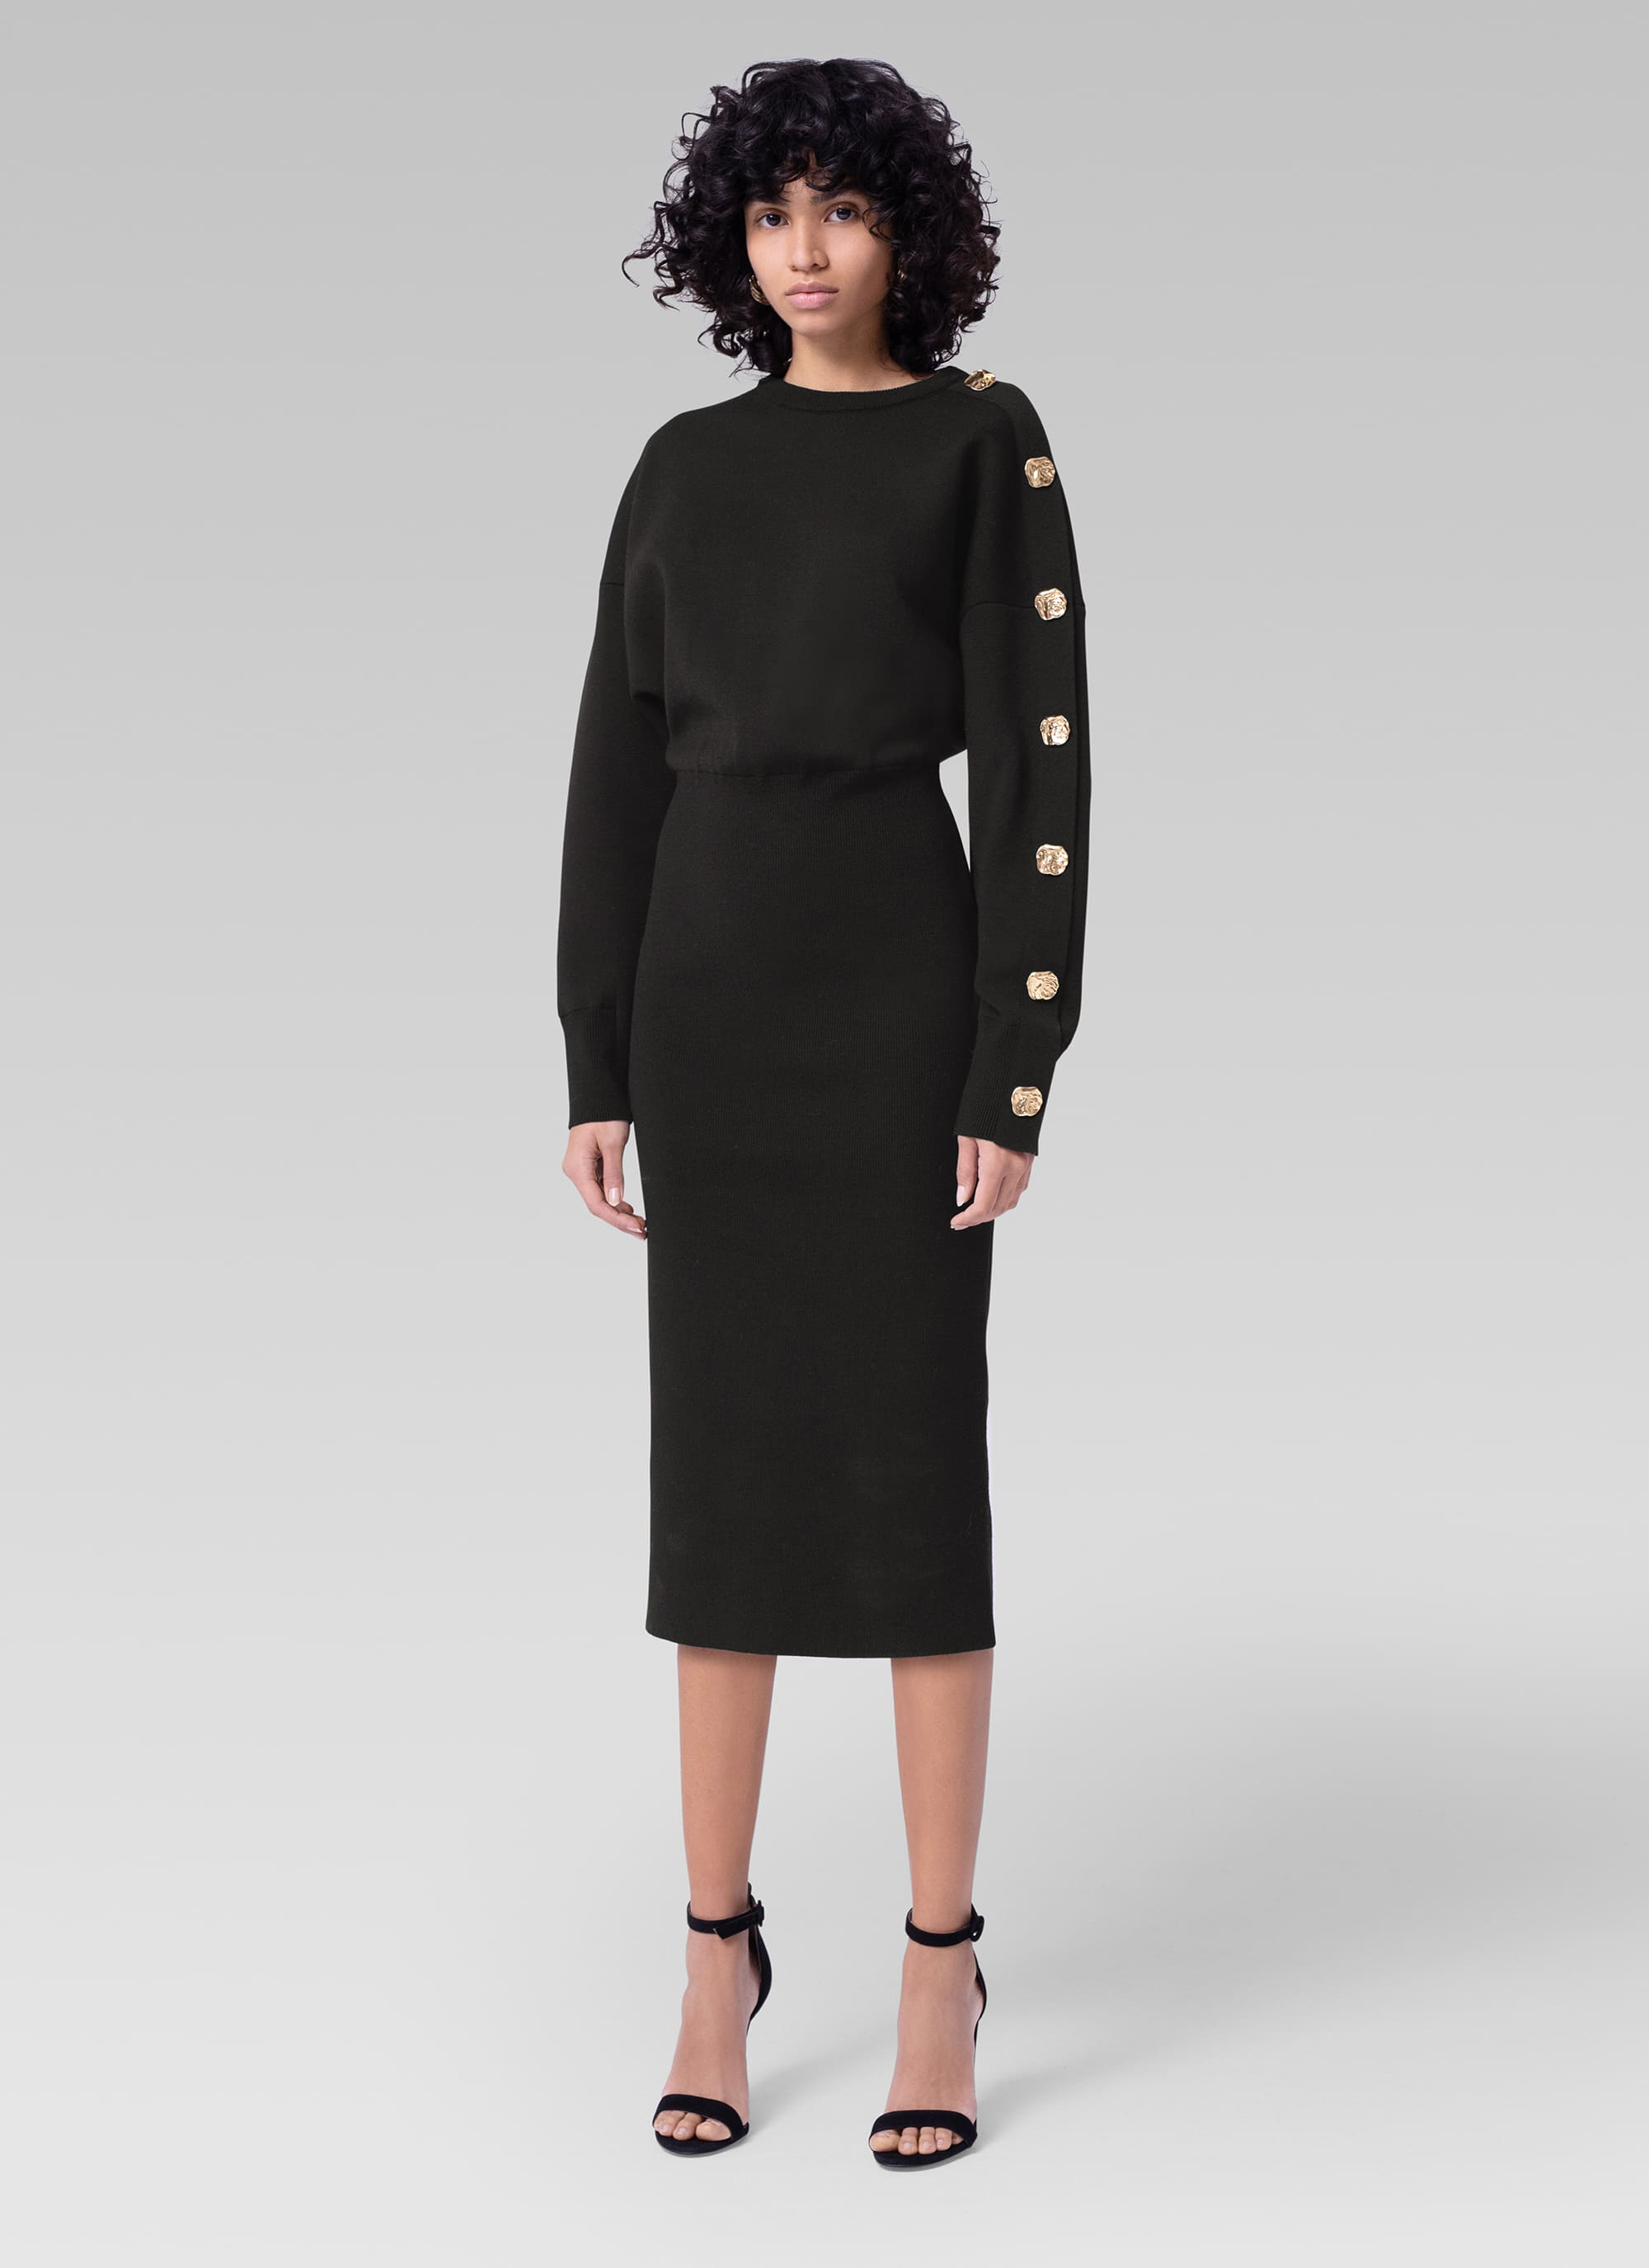 Casual knit dress with button detail - ESCADA